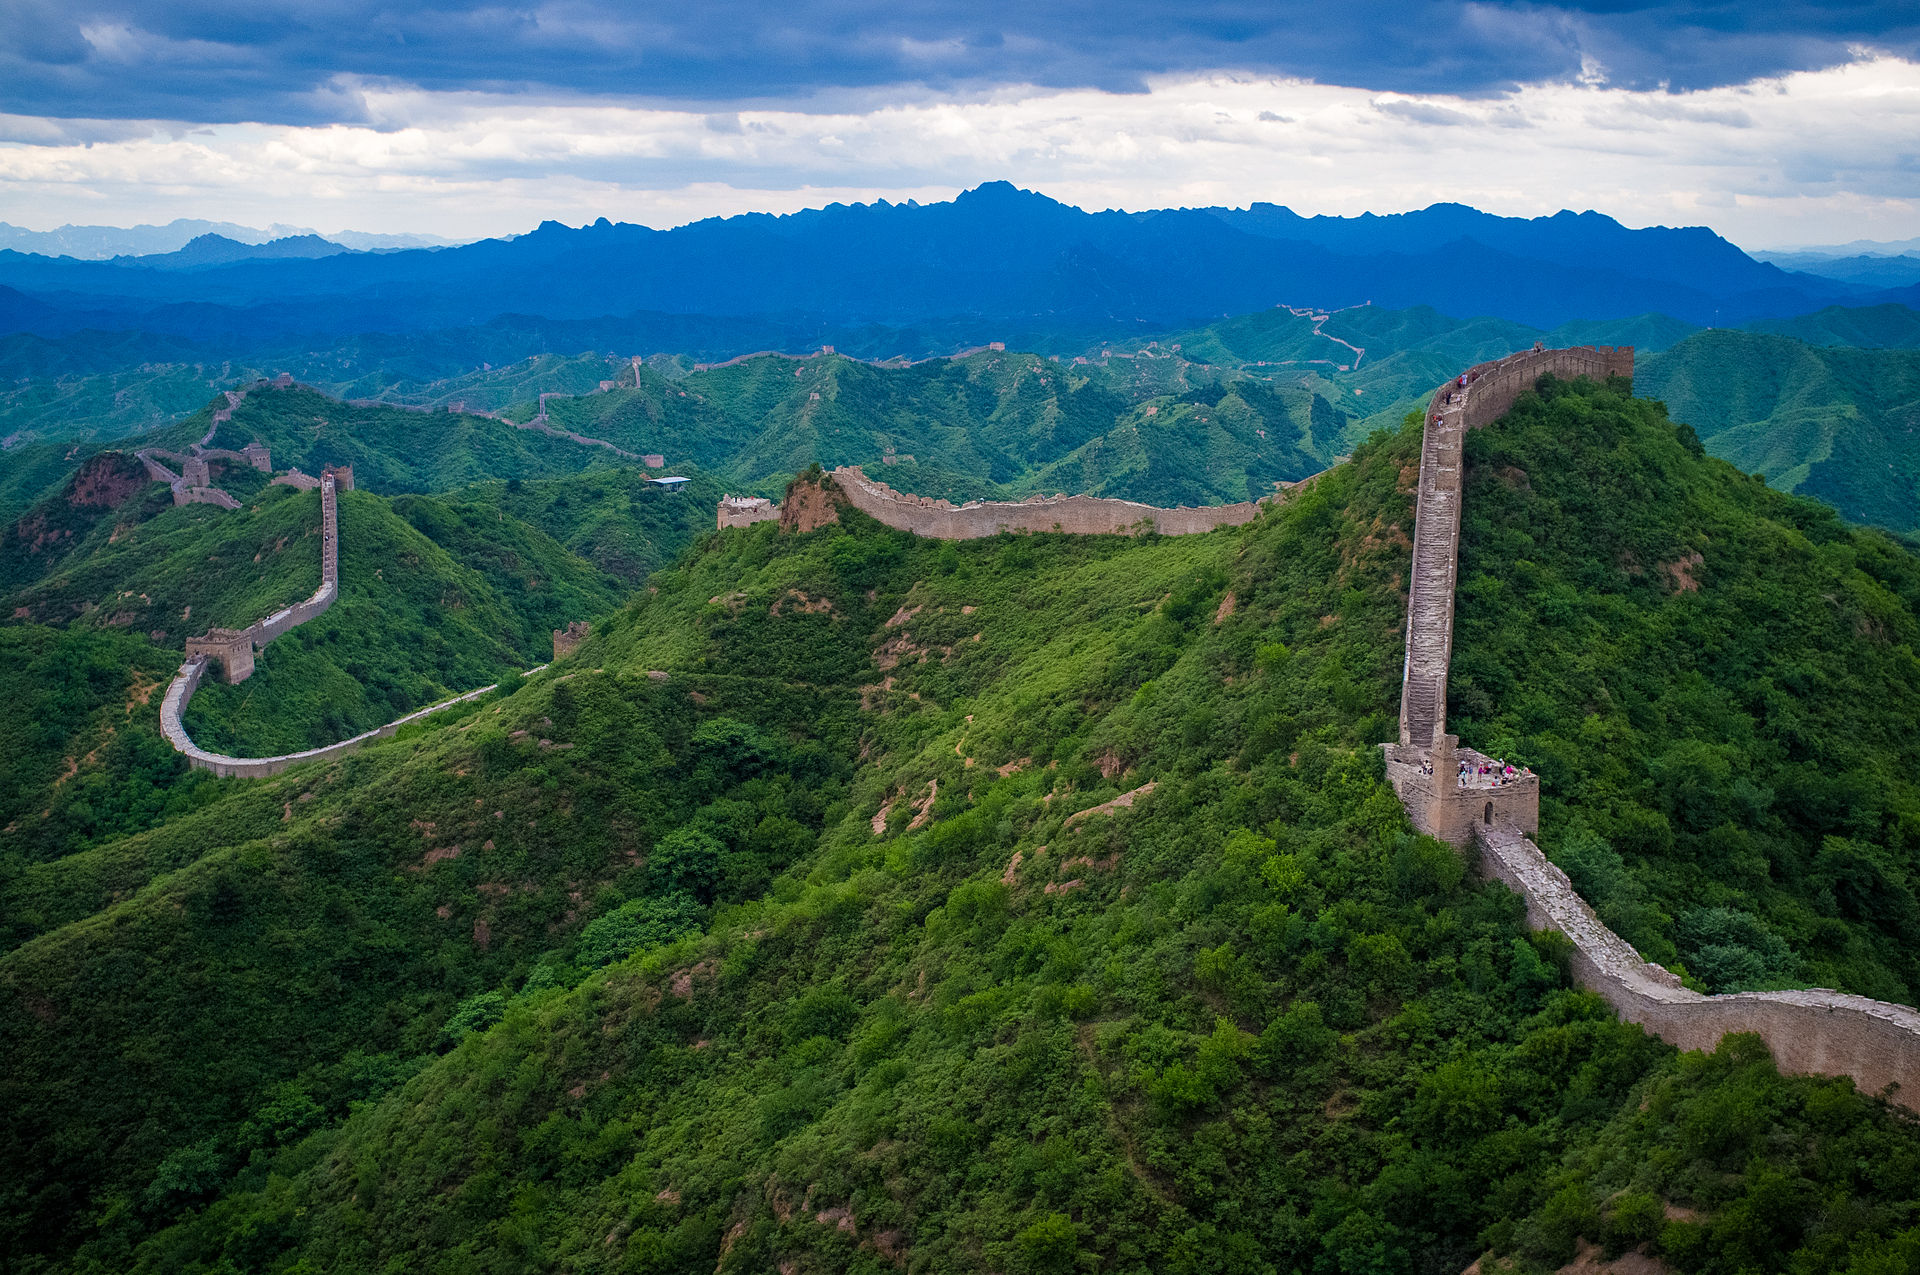 The Great Chinese Wall: still standing after 24 centuries, its original purpose now obsolete.